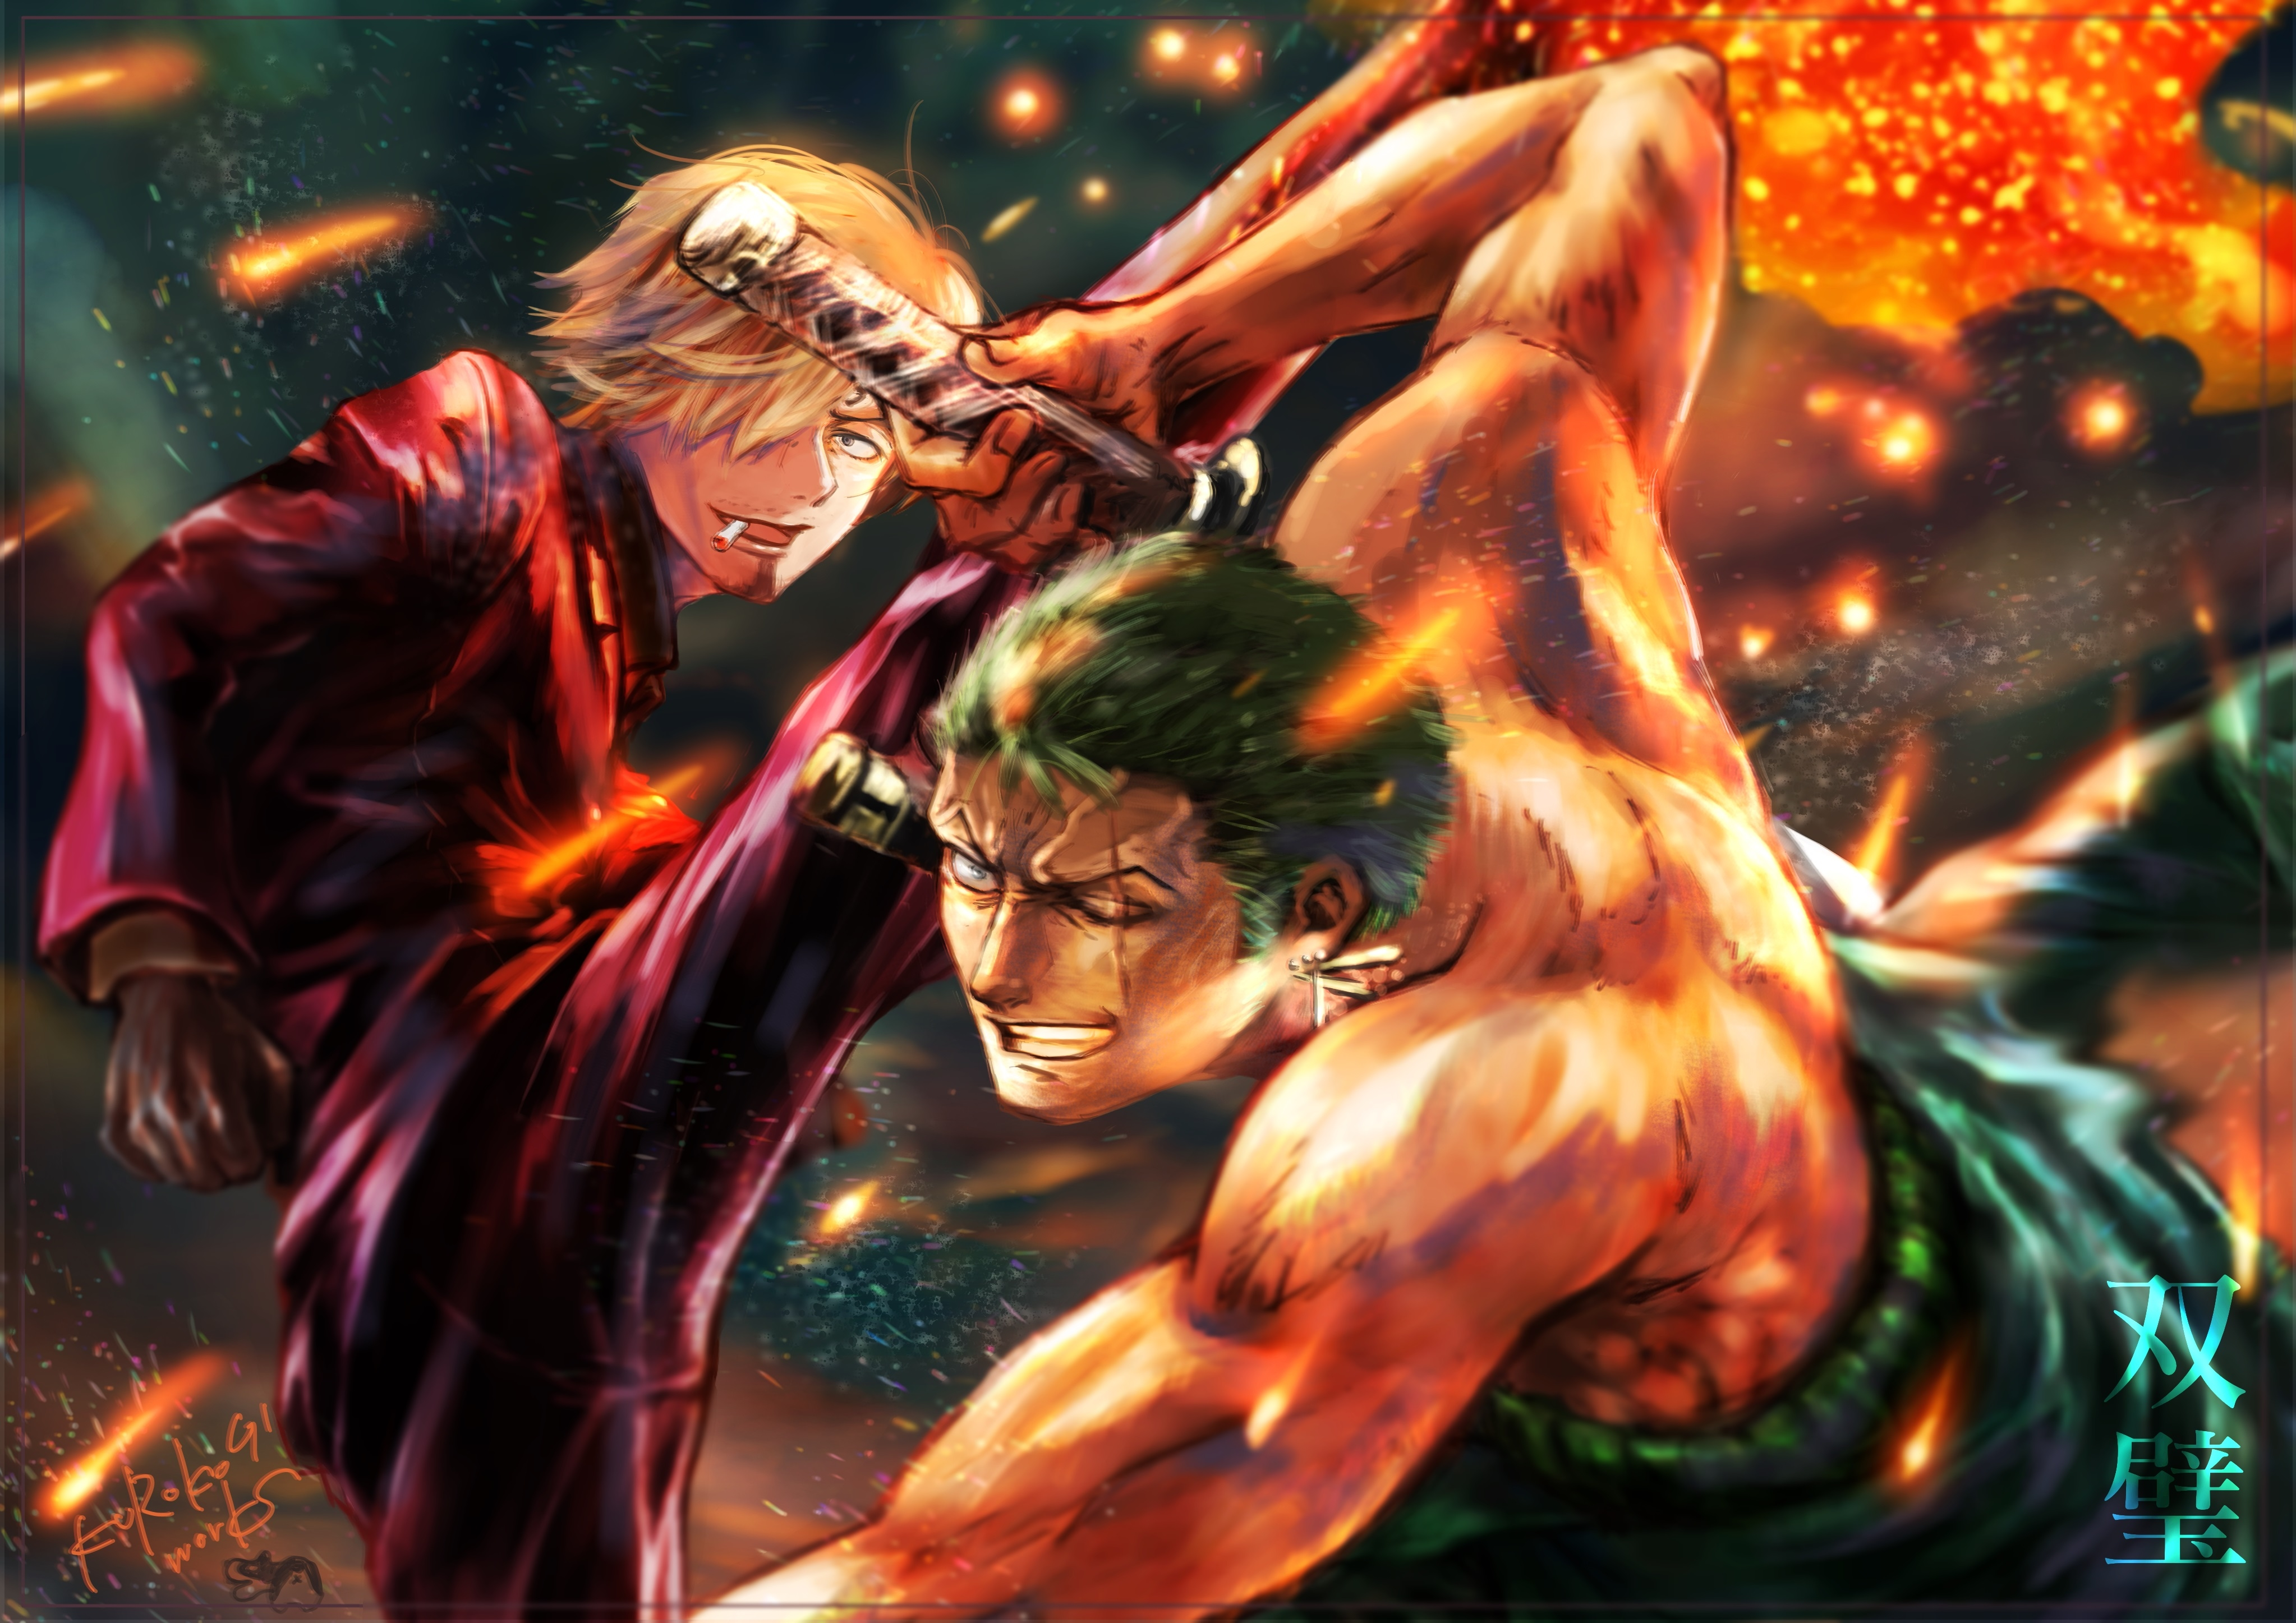 3840x2160 Roronoa Zoro Vs Sanji One Piece 4k Wallpaper Hd Anime 4k Wallpapers Images Photos And Background